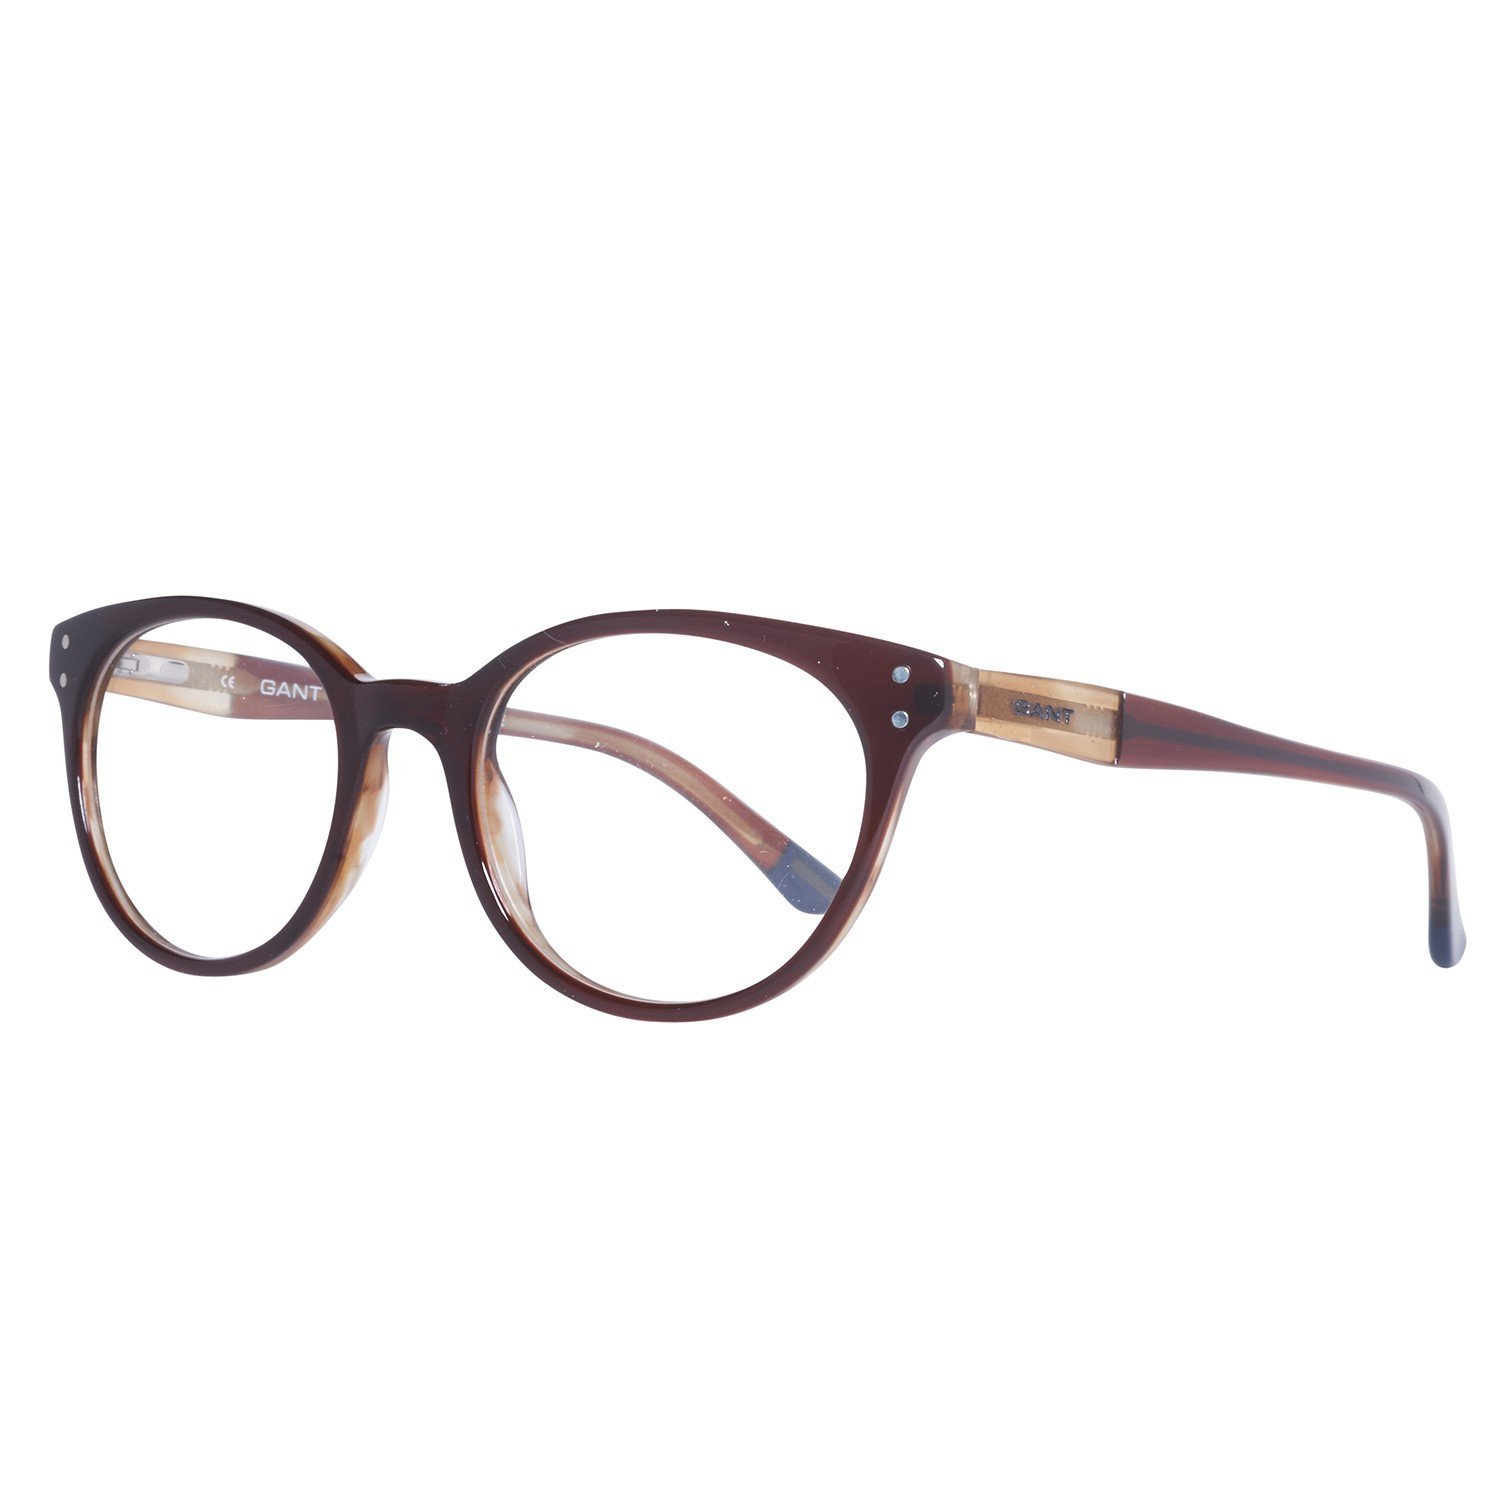 GANT GA 4041 Eyeglasses 050 Dark Brown